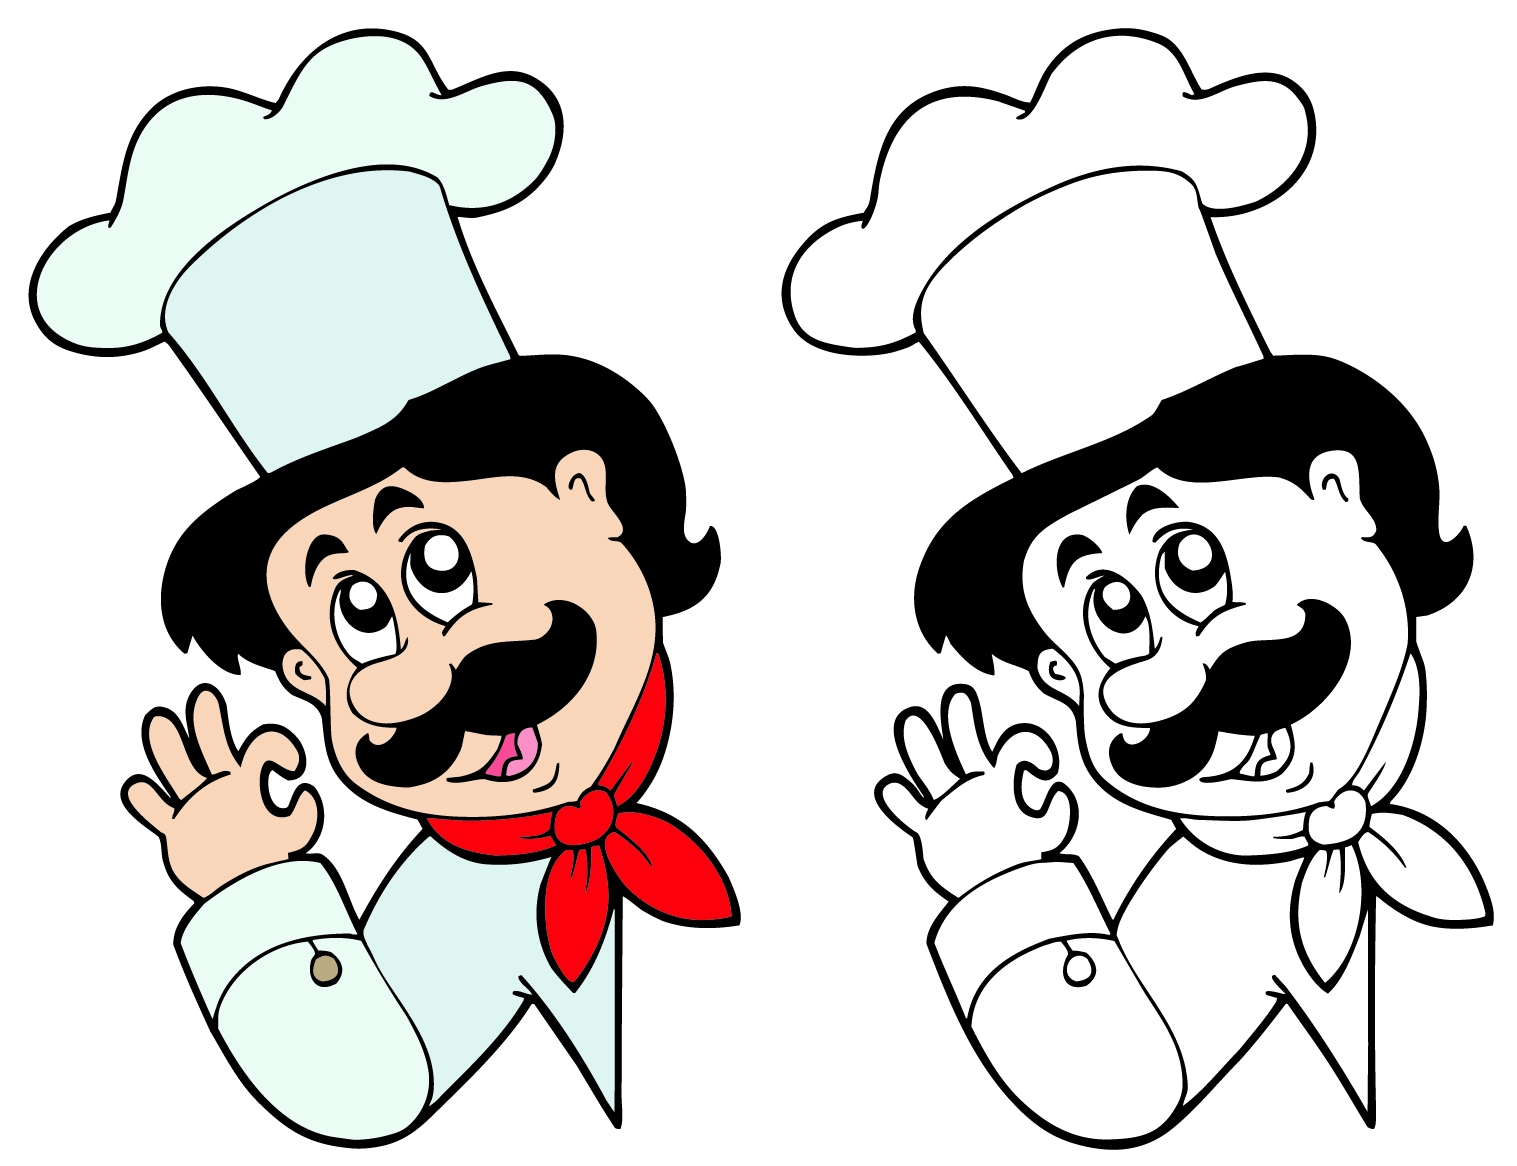 Chef Cartoon Images - ClipArt Best